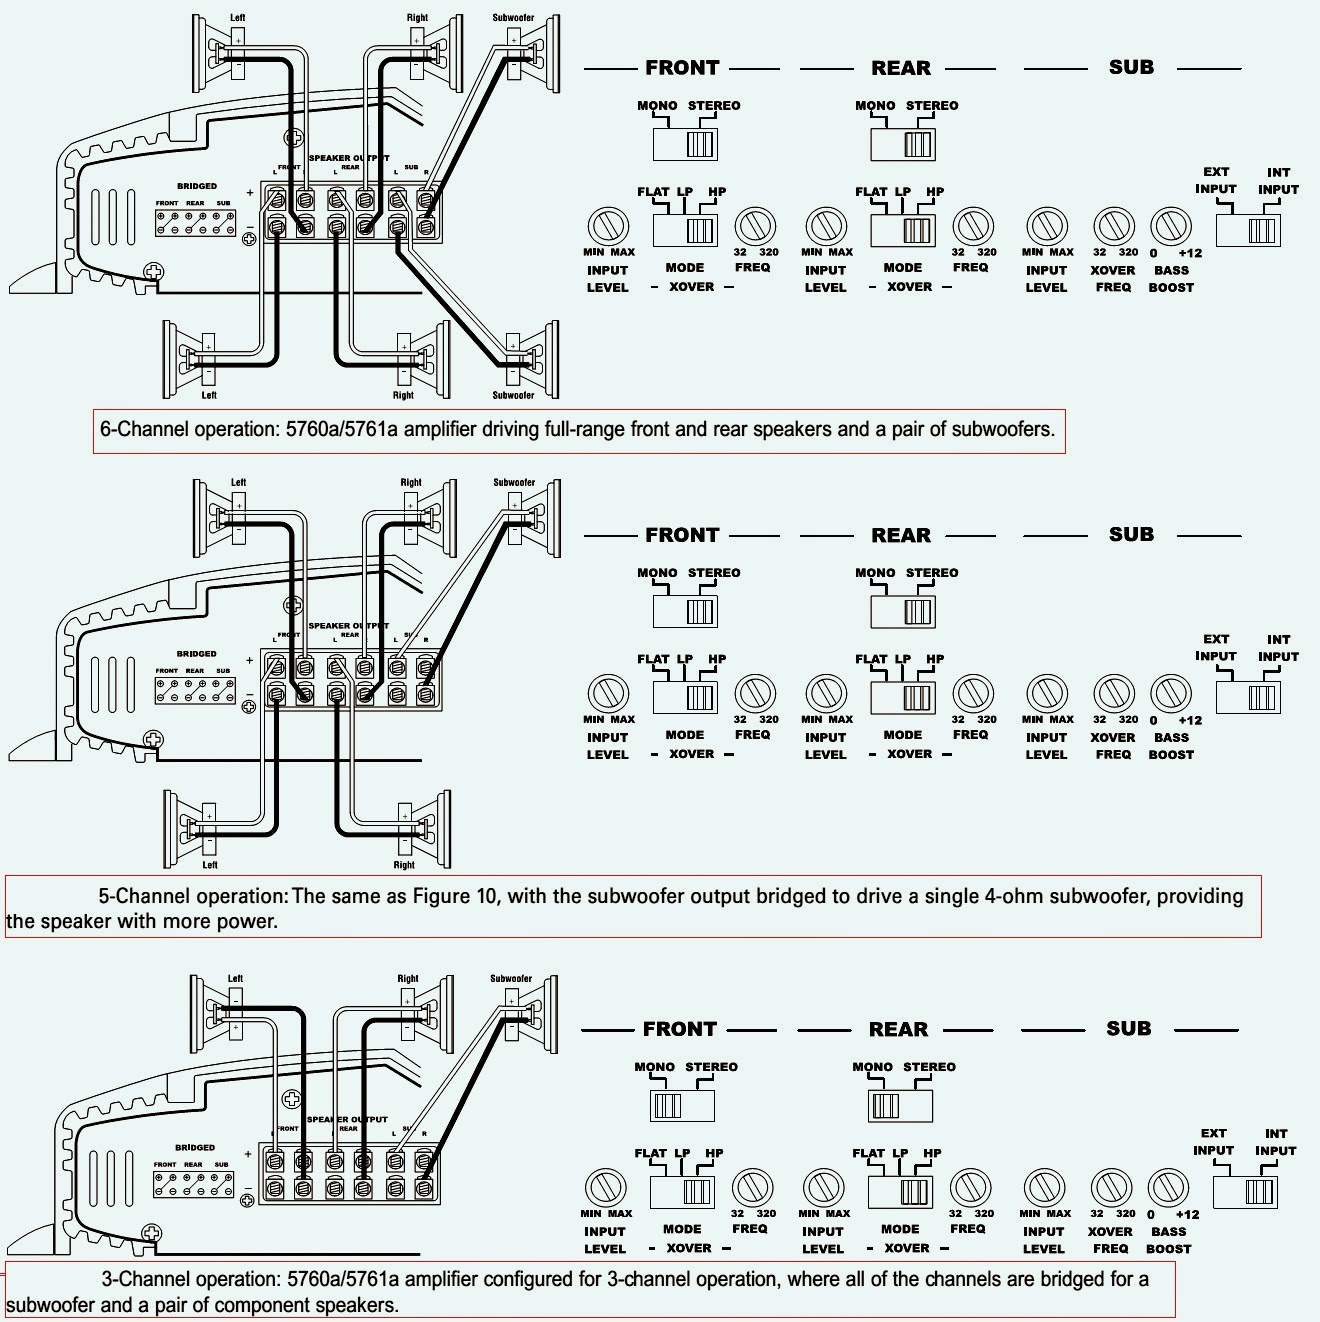 1998 dodge ram 1500 infinity stereo wiring diagram infinity amplifier wiring diagram infinity 5760a - 5761a - 6 channel power amplifier wiring ...